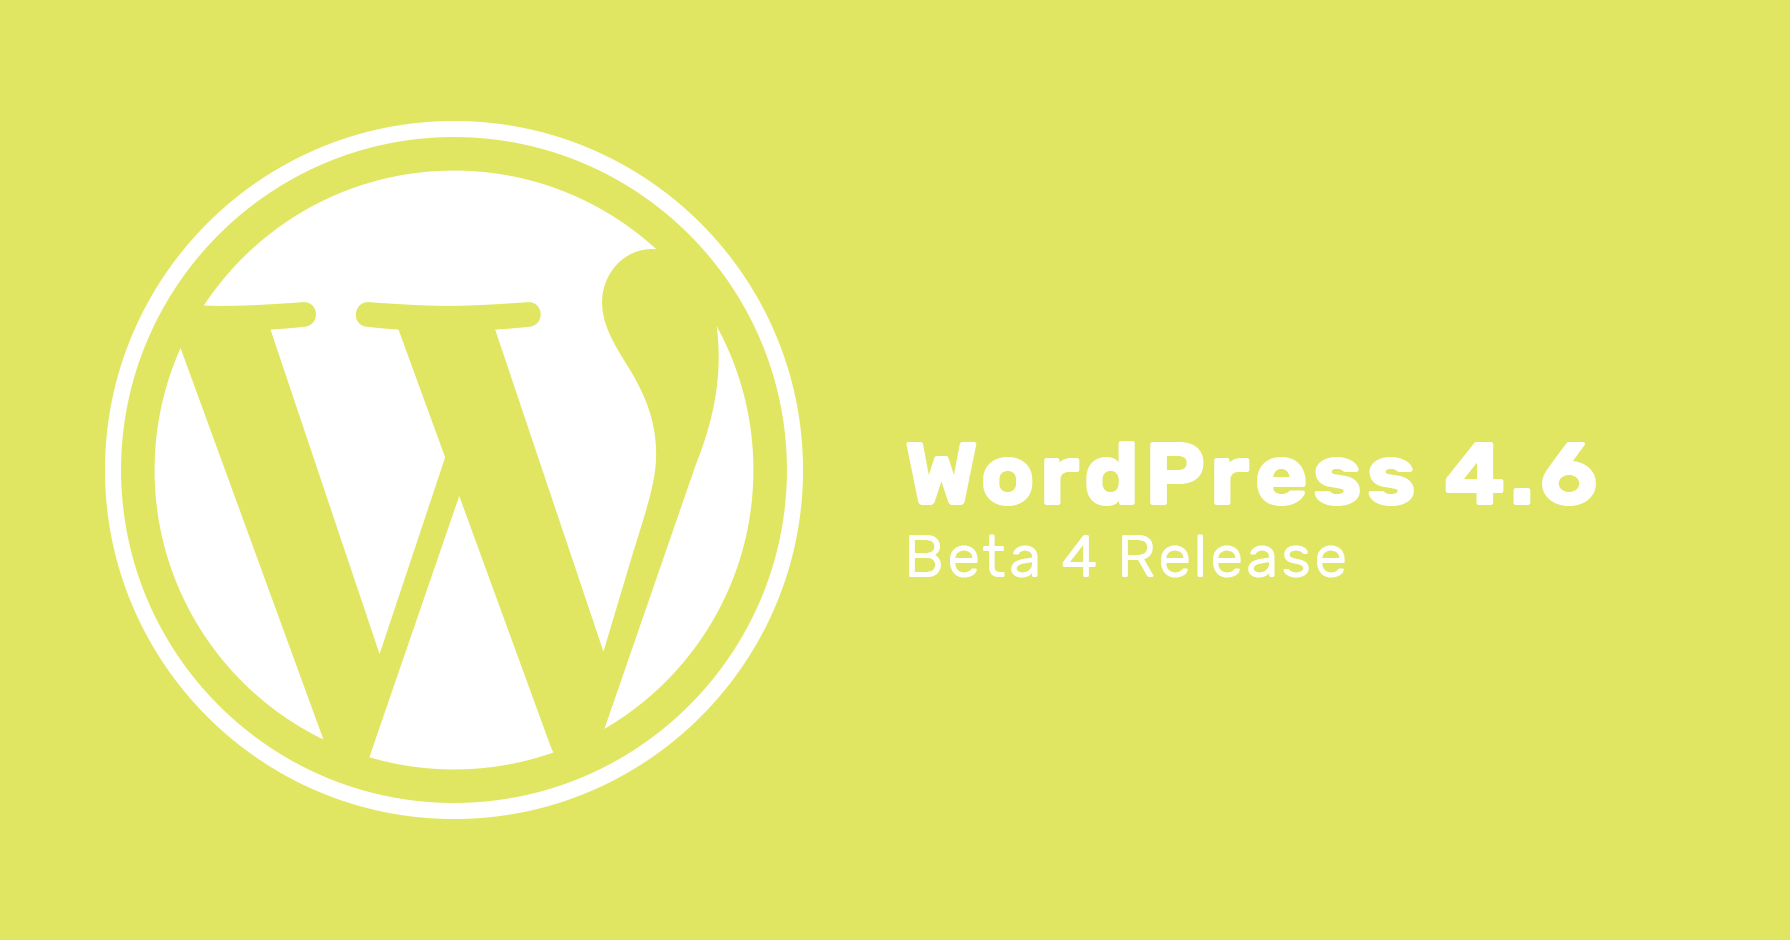 WordPress 4.6 Beta 4 is now available!